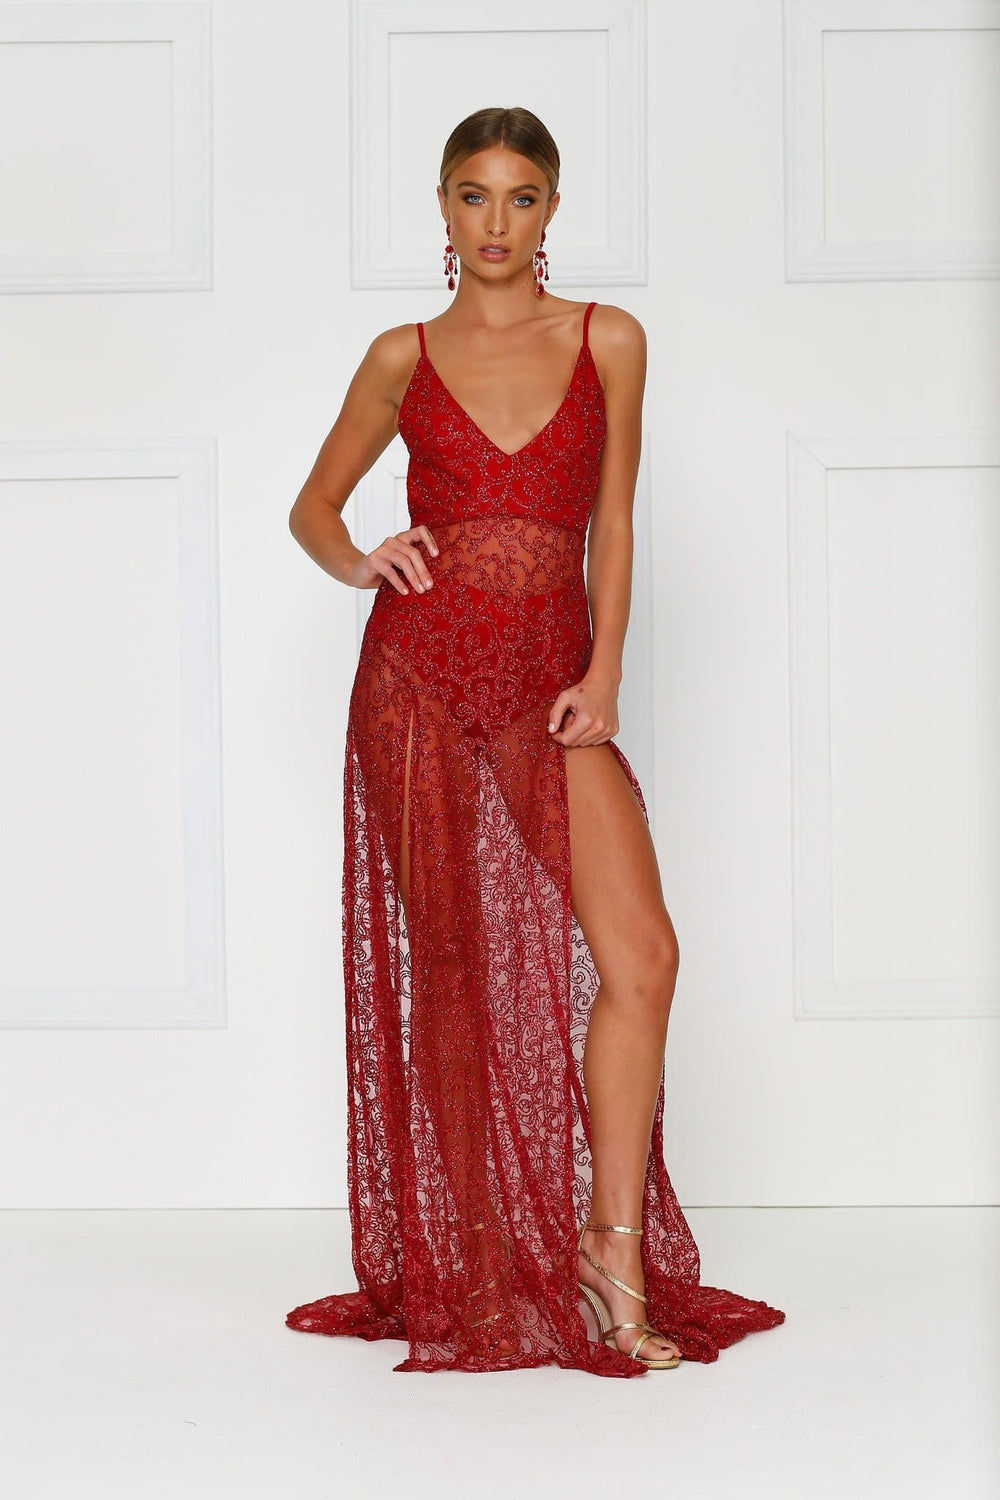 Rozay - Red Sequin Backless Dress with Two Front Slits & Mermaid Tail